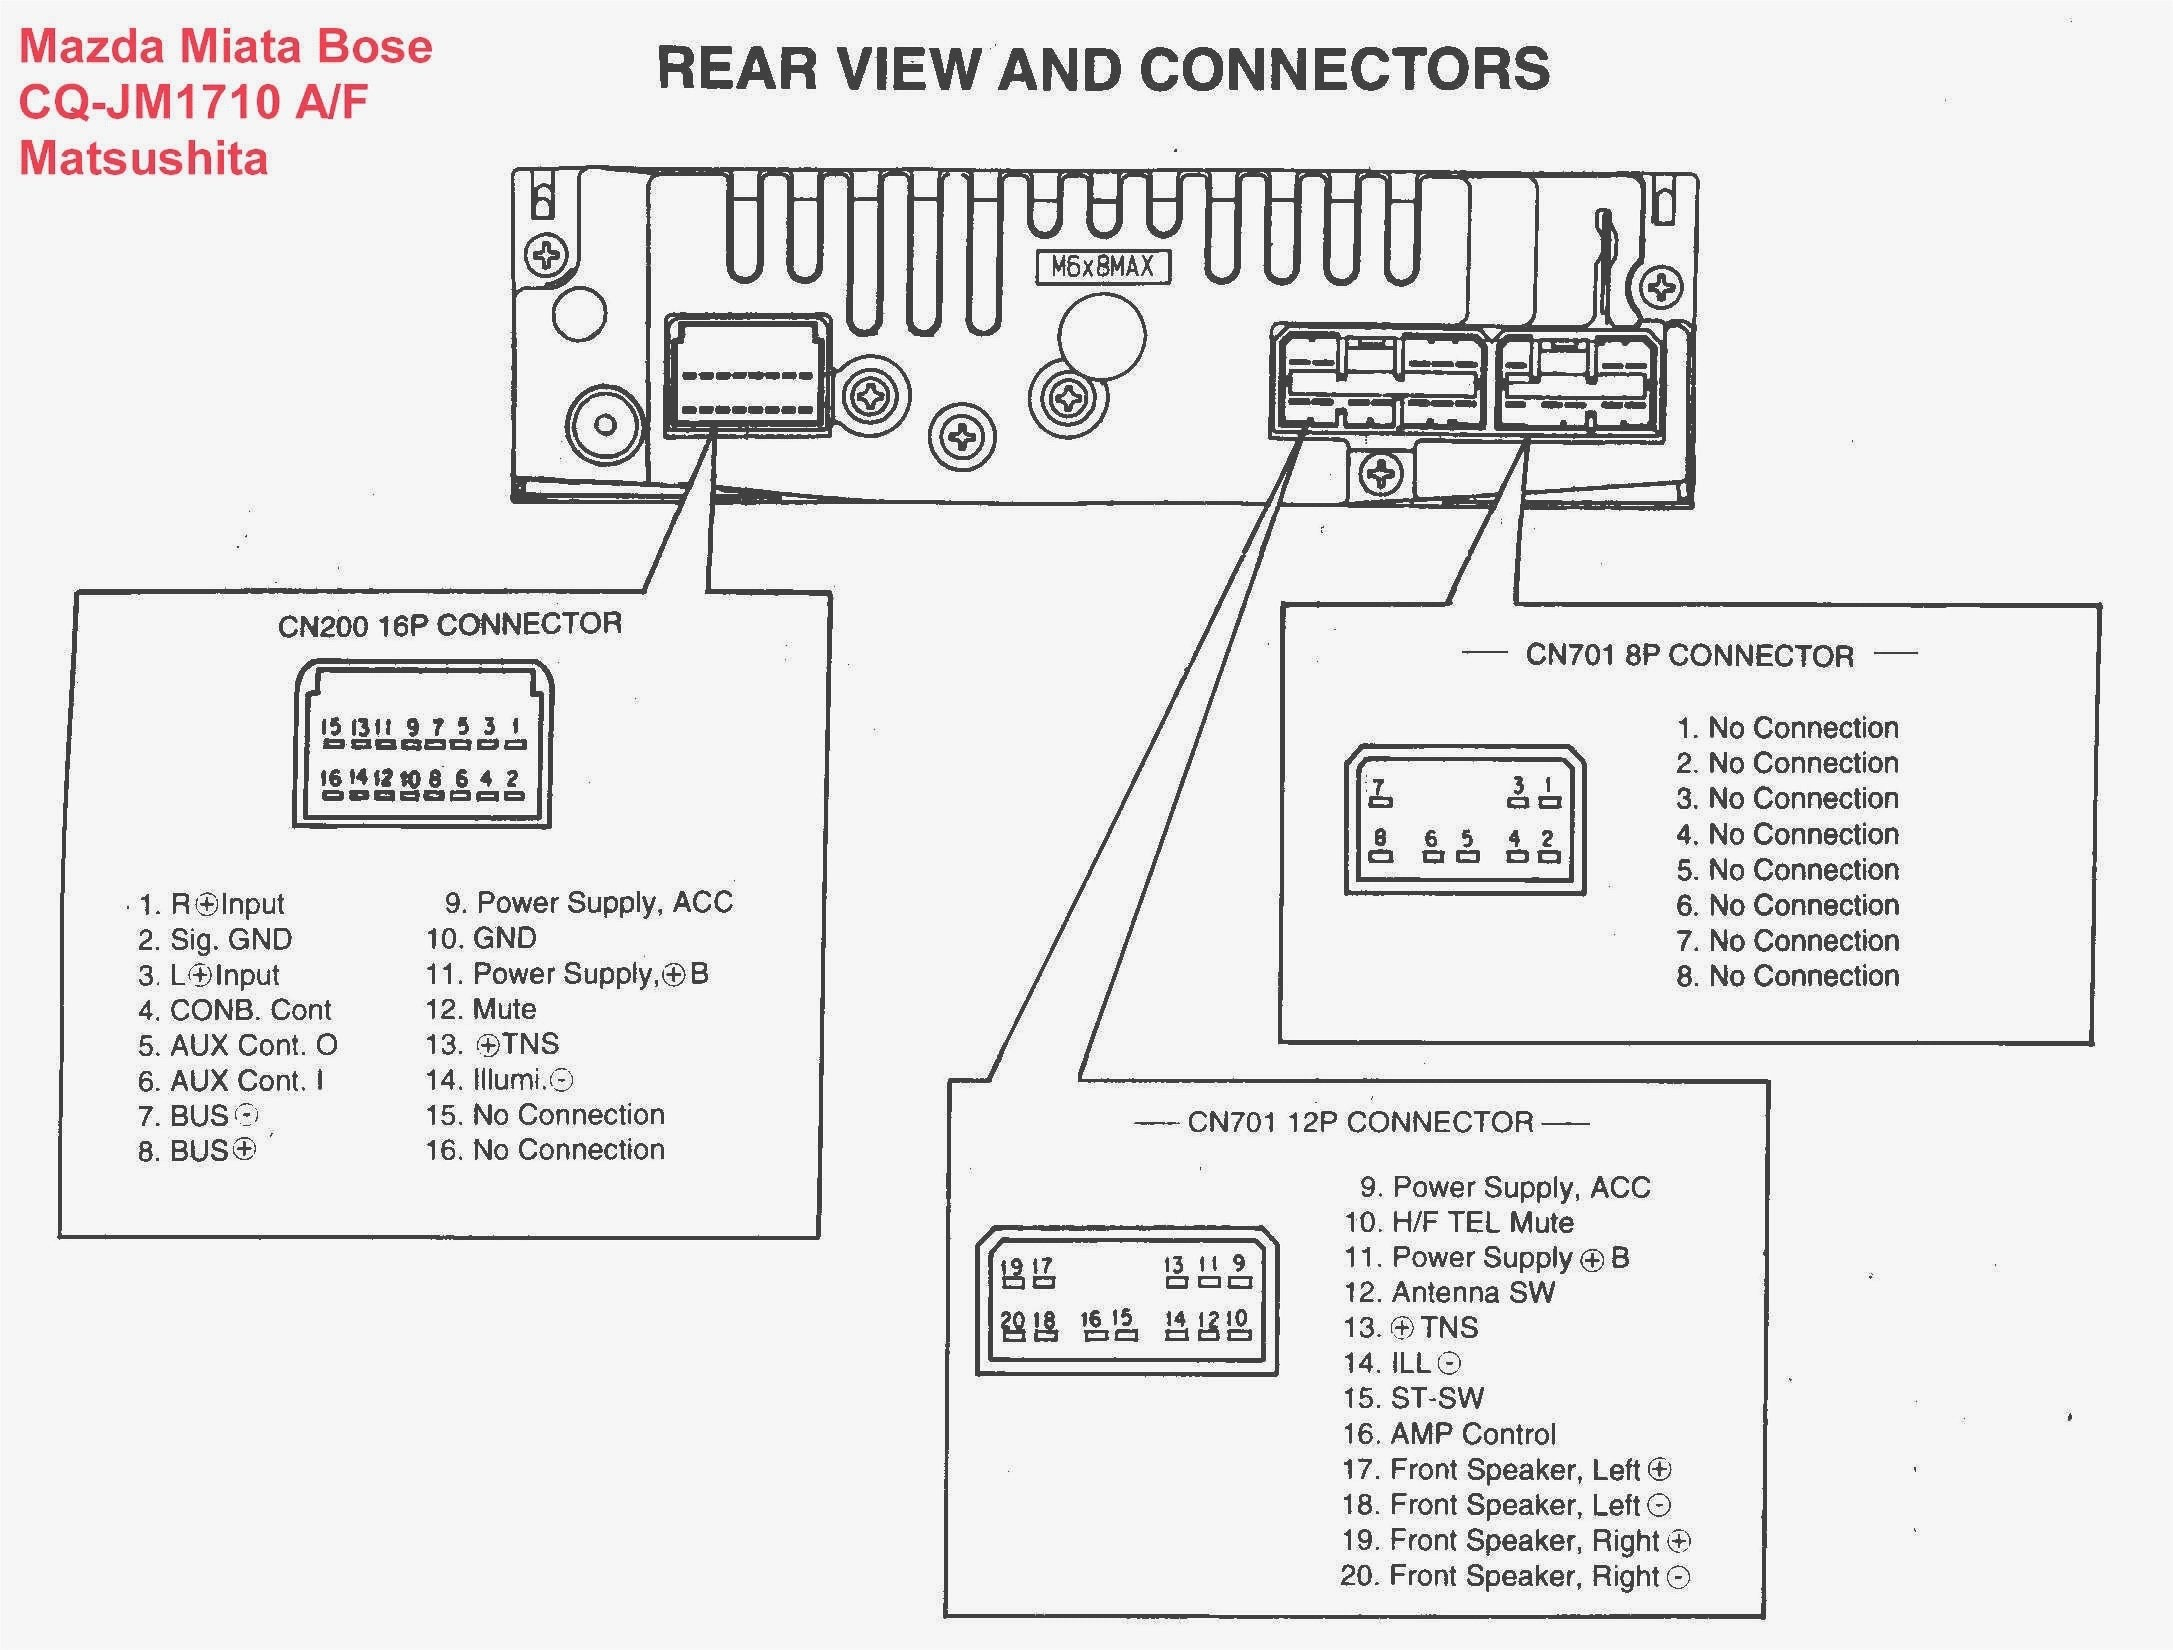 Pioneer Fh X Bs Wiring Harness Diagram on pioneer dvd cd, pioneer deh-x8500bs, pioneer fh-x700bt, pioneer avh-x2700bs,